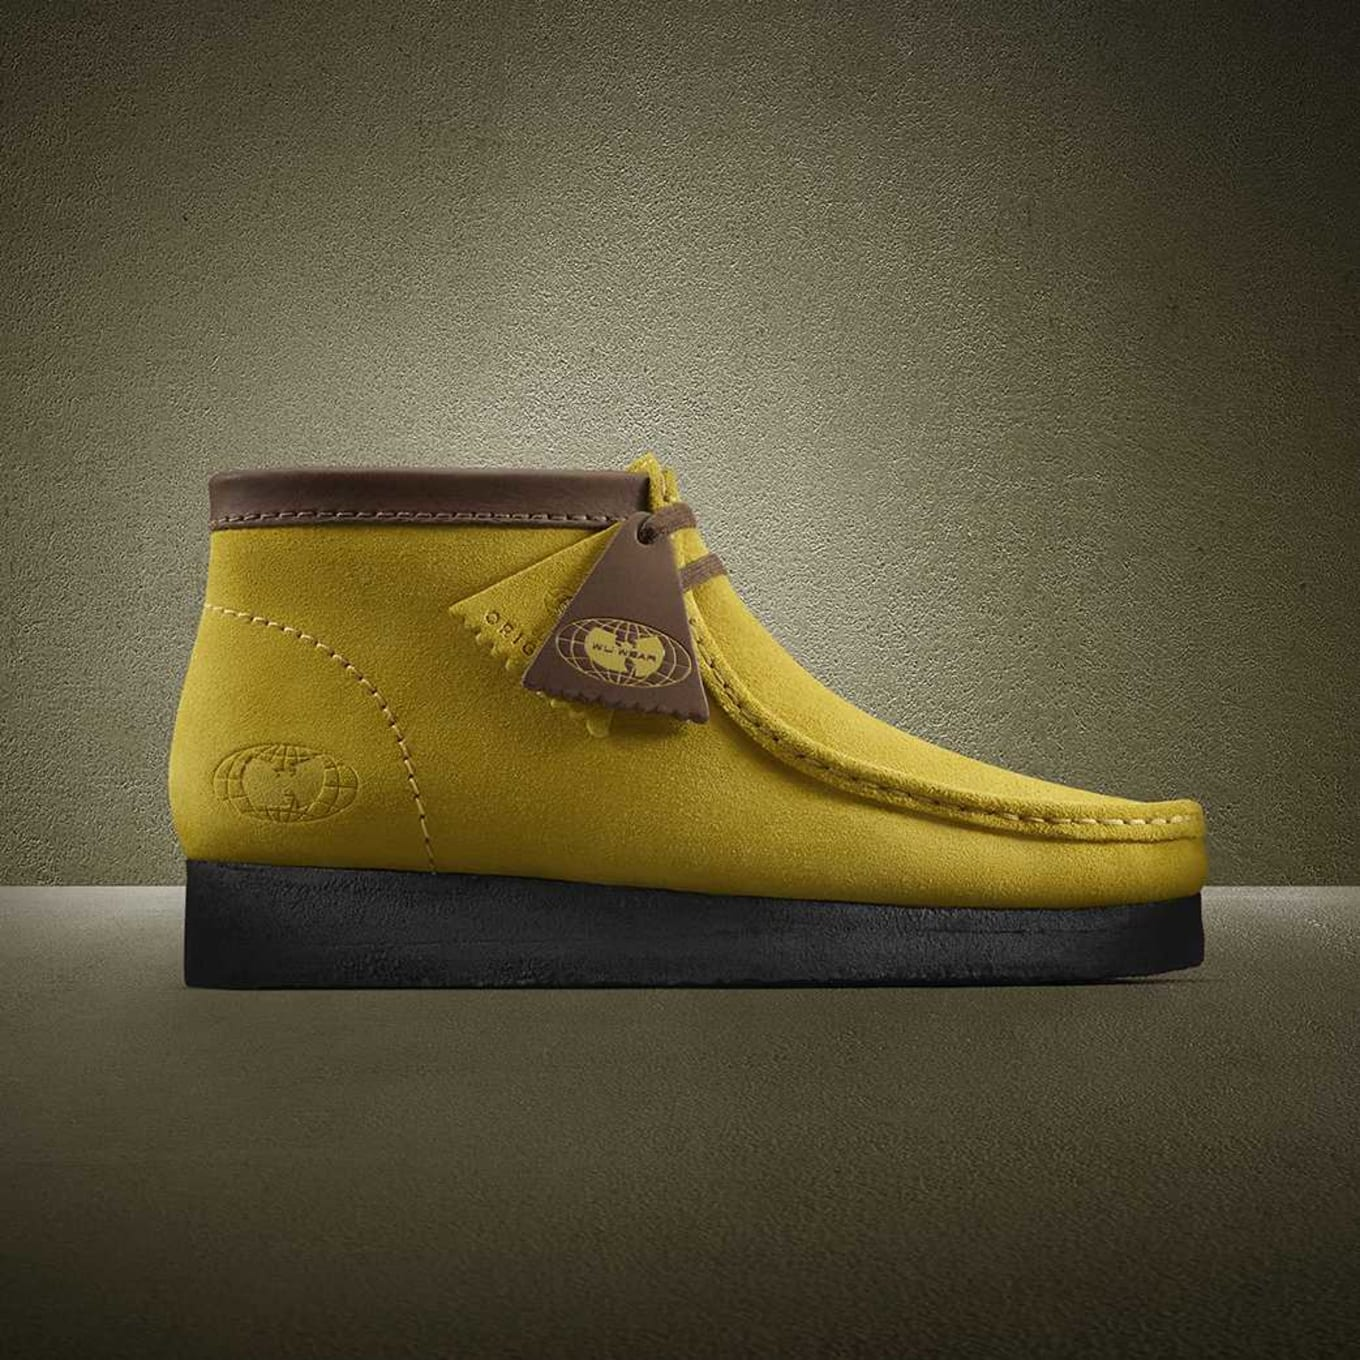 huge sale usa cheap sale latest Wu-Wear x Clarks Wallabees 25th Anniversary Yellow | Sole ...